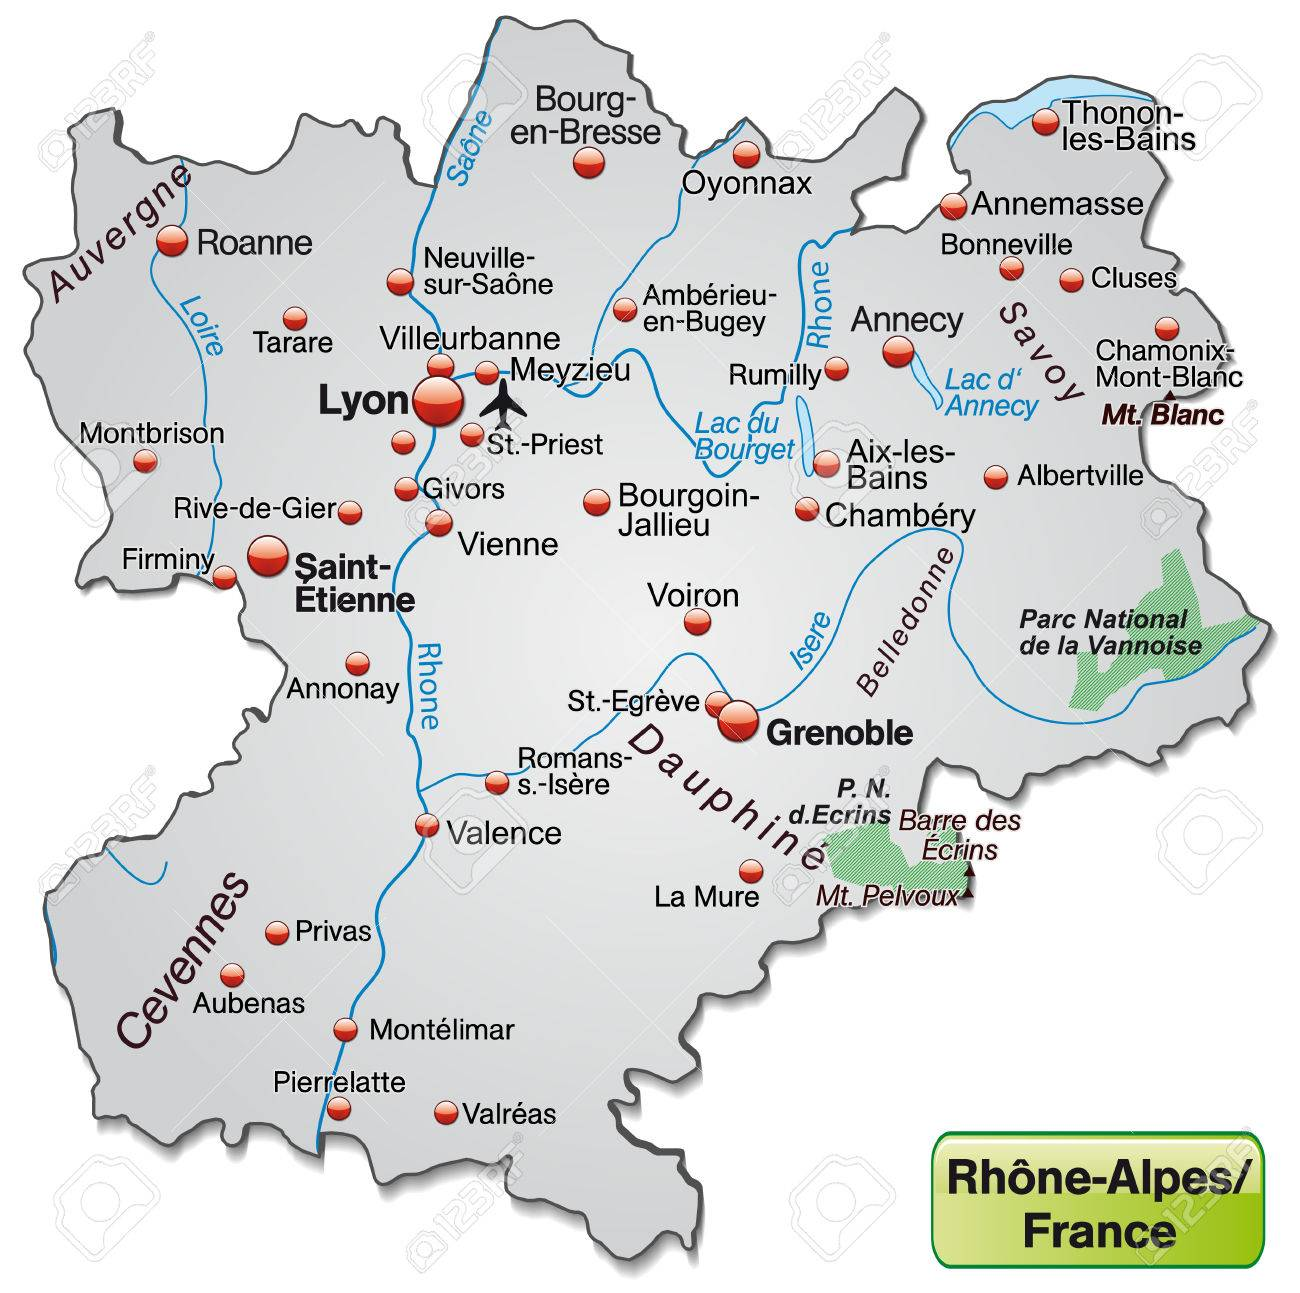 Map Of RhoneAlpes As An Overview Map In Gray Royalty Free Cliparts